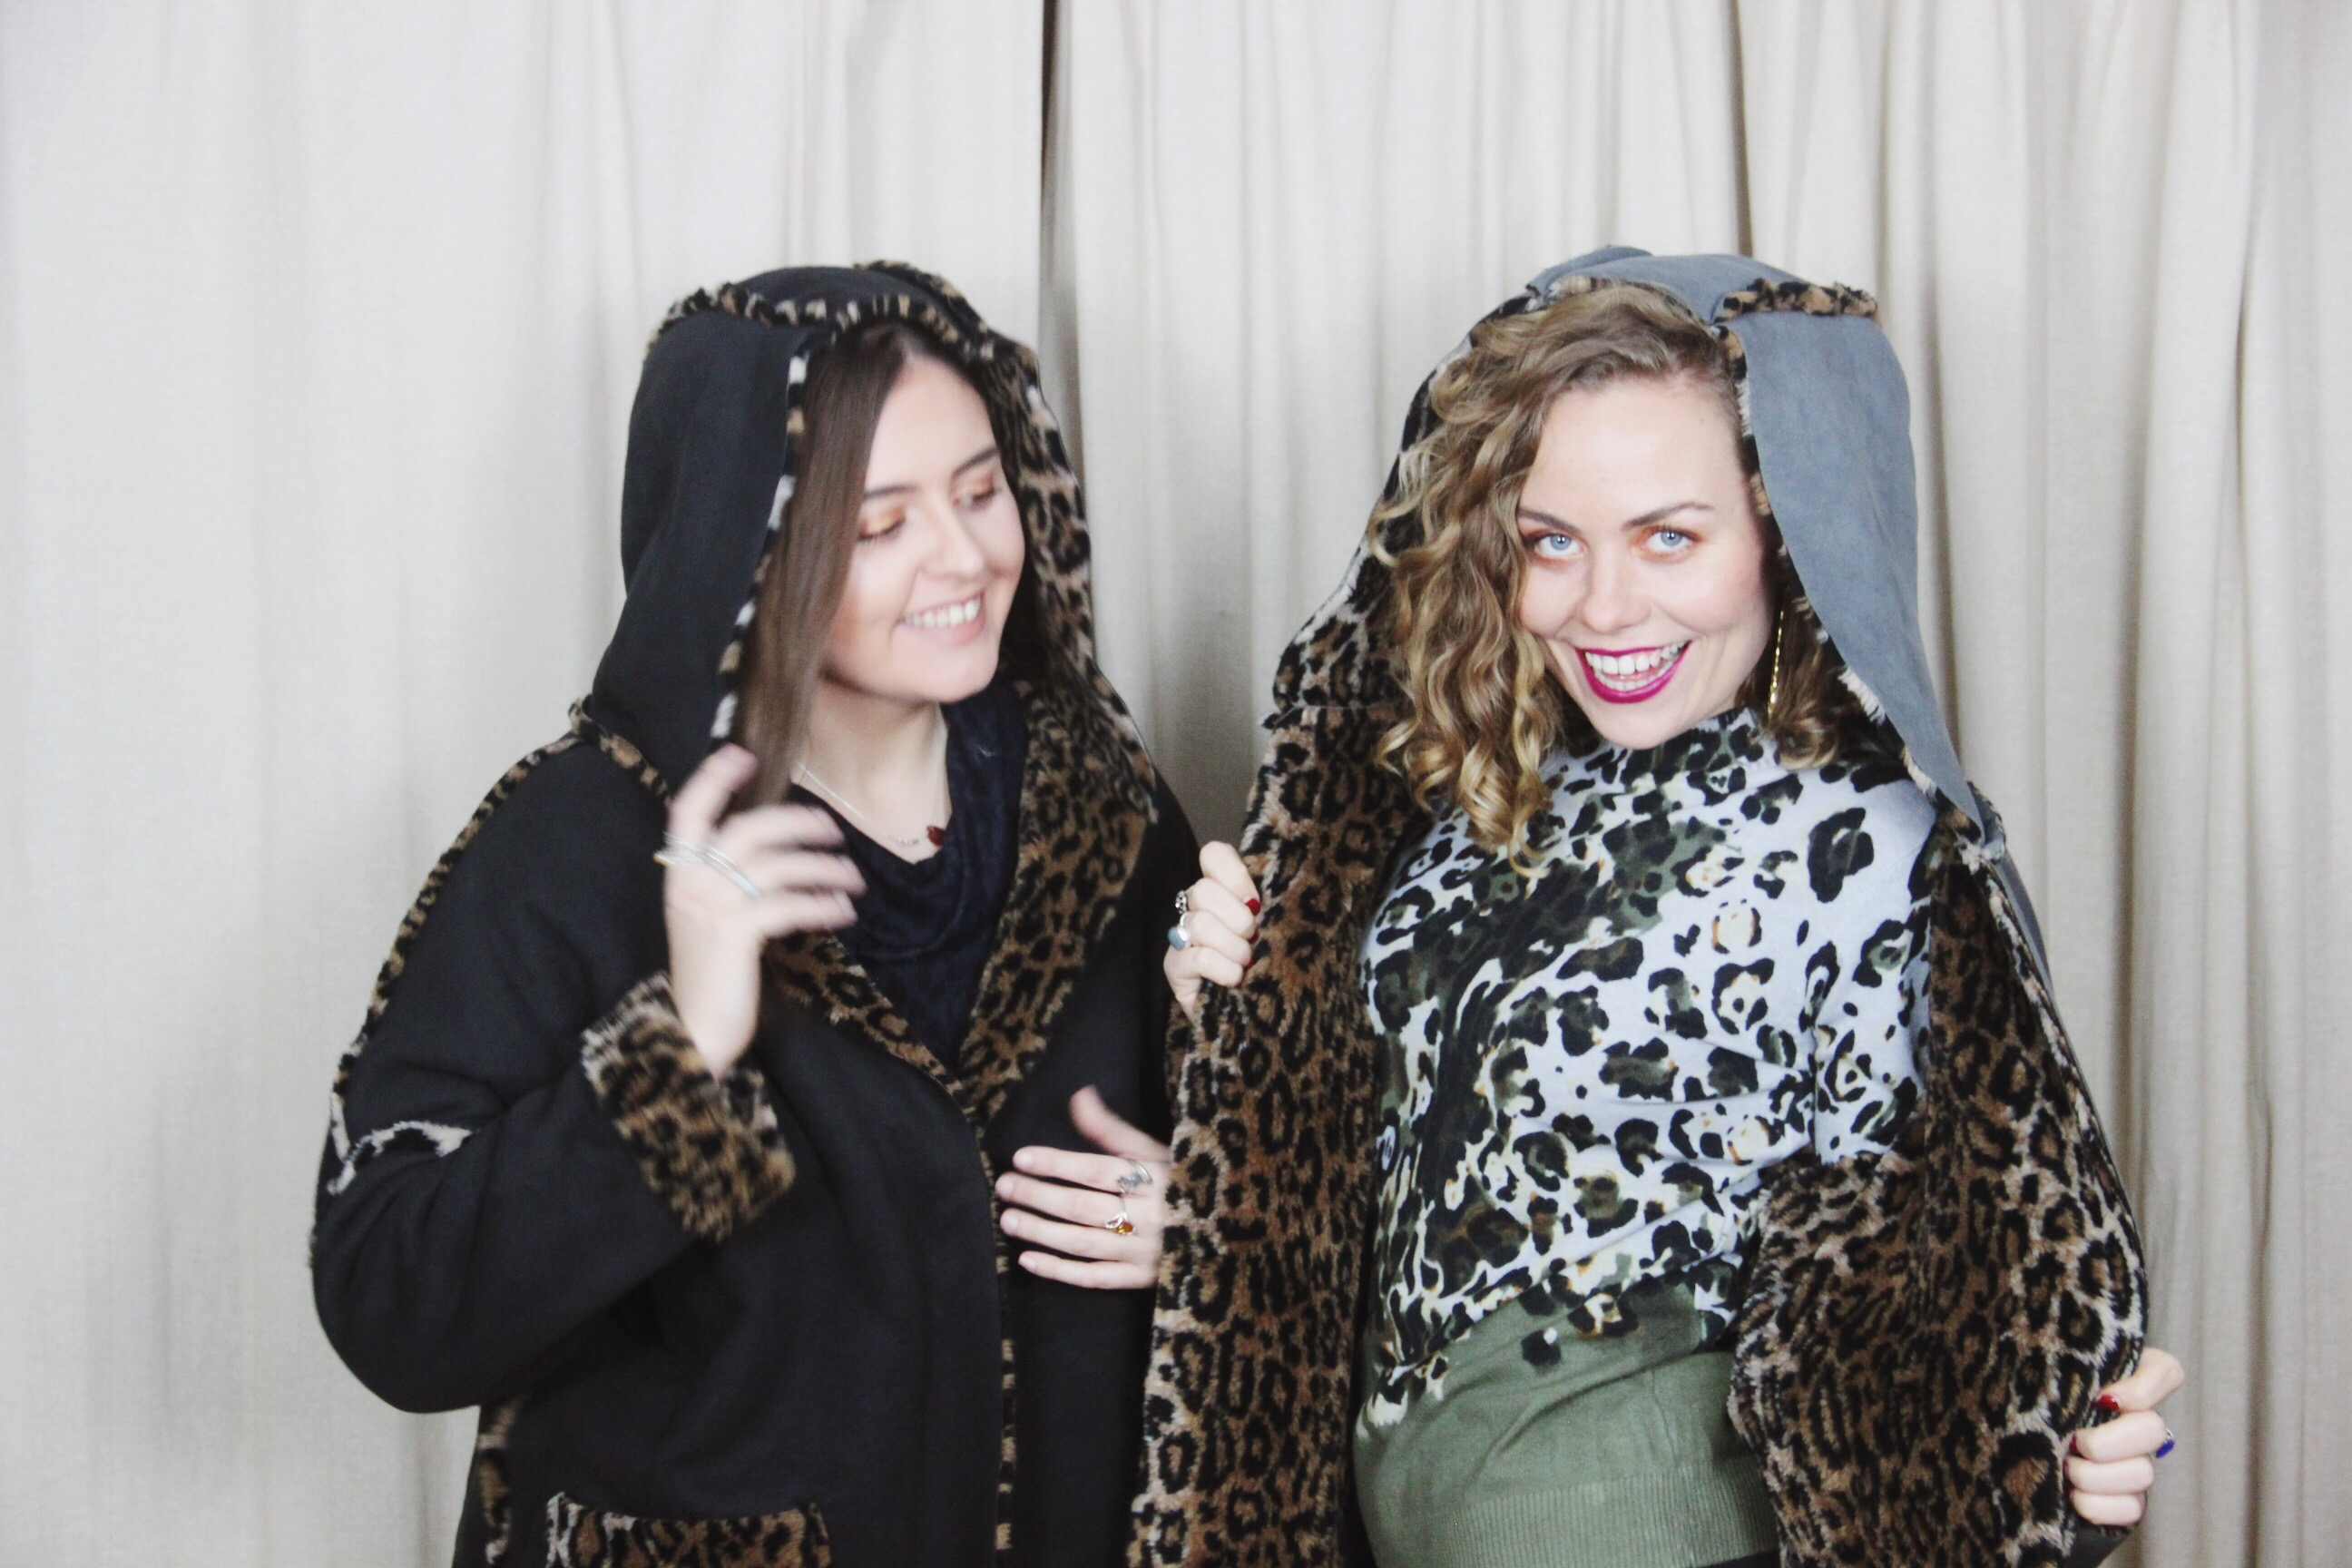 Reversable_Leopard_Print_Jacket_with_hood_in_black_and_grey